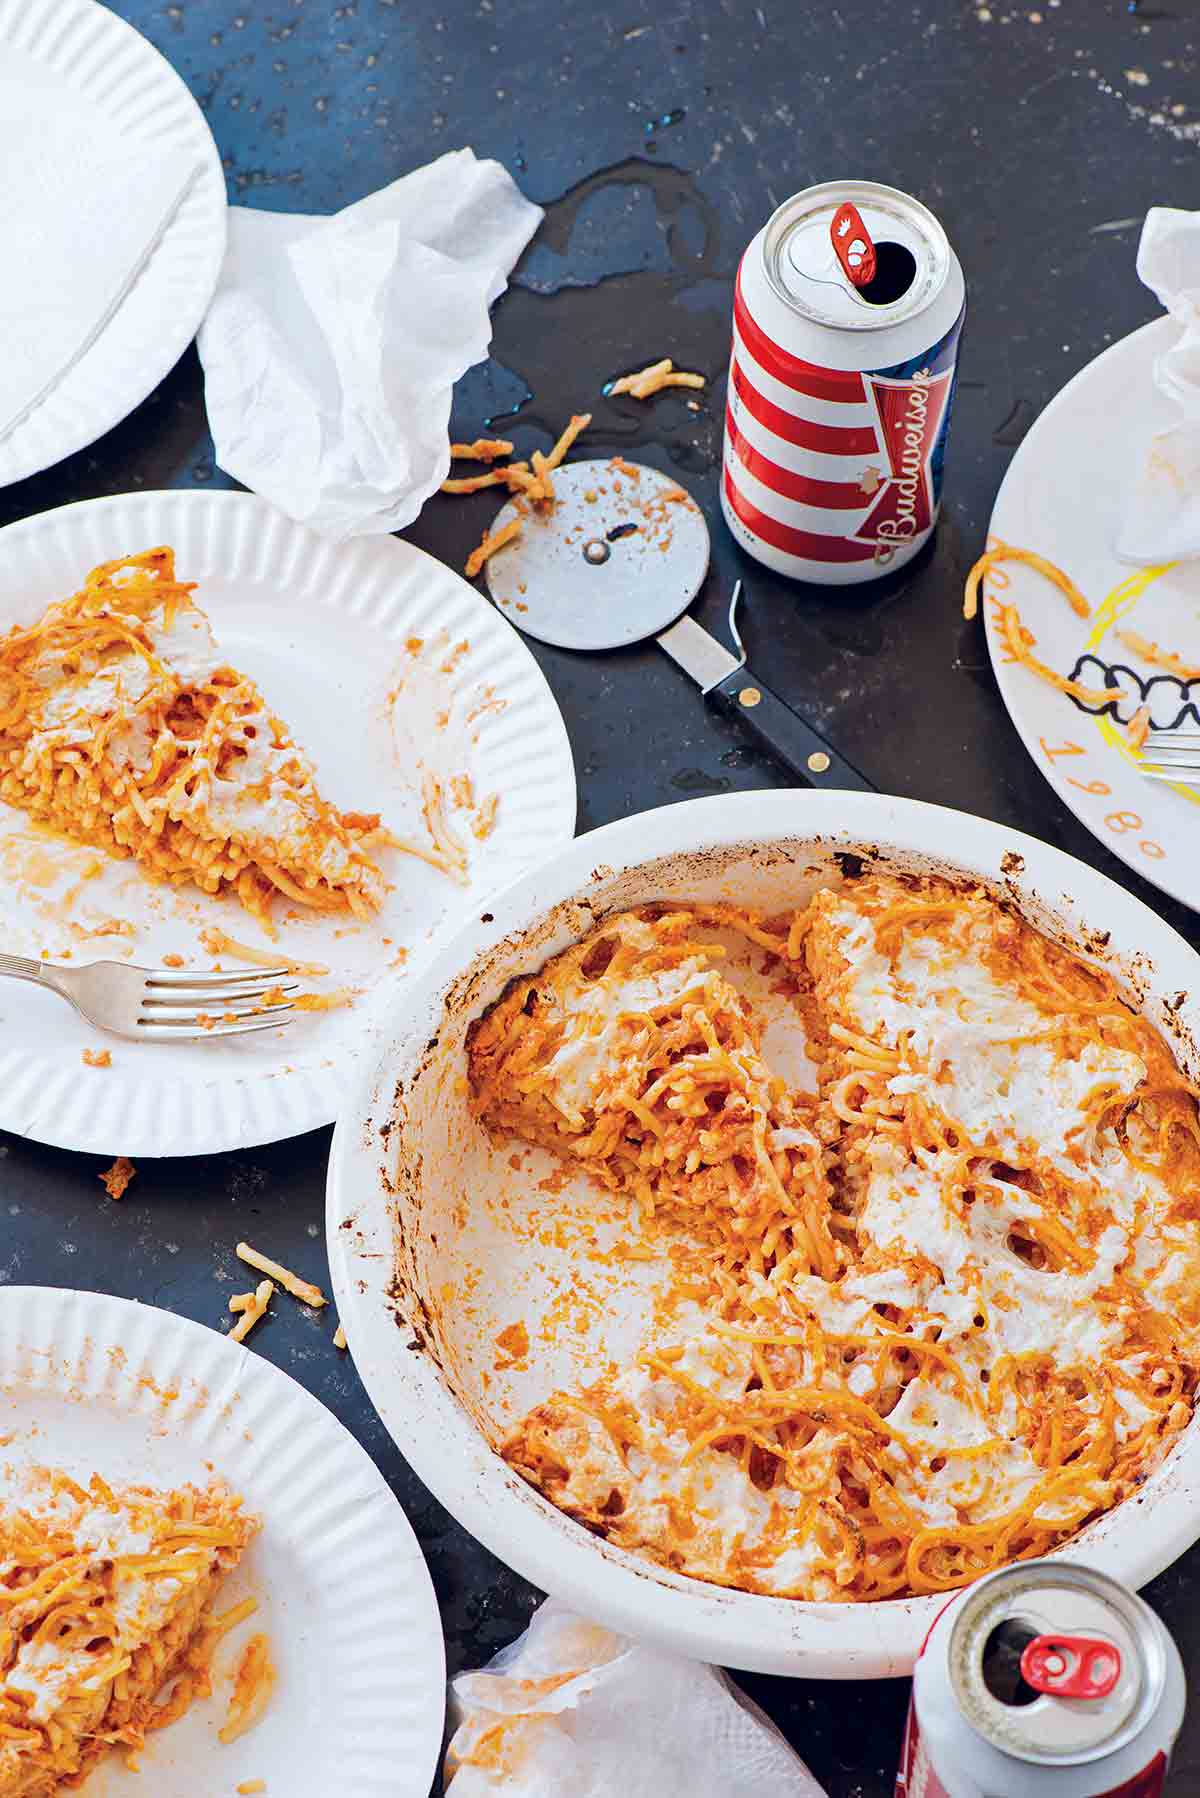 A white dish with a partially cut spaghetti pie, two paper plates with slices of spaghetti pie, a pizza cutter, napkins, and two cans of beer.